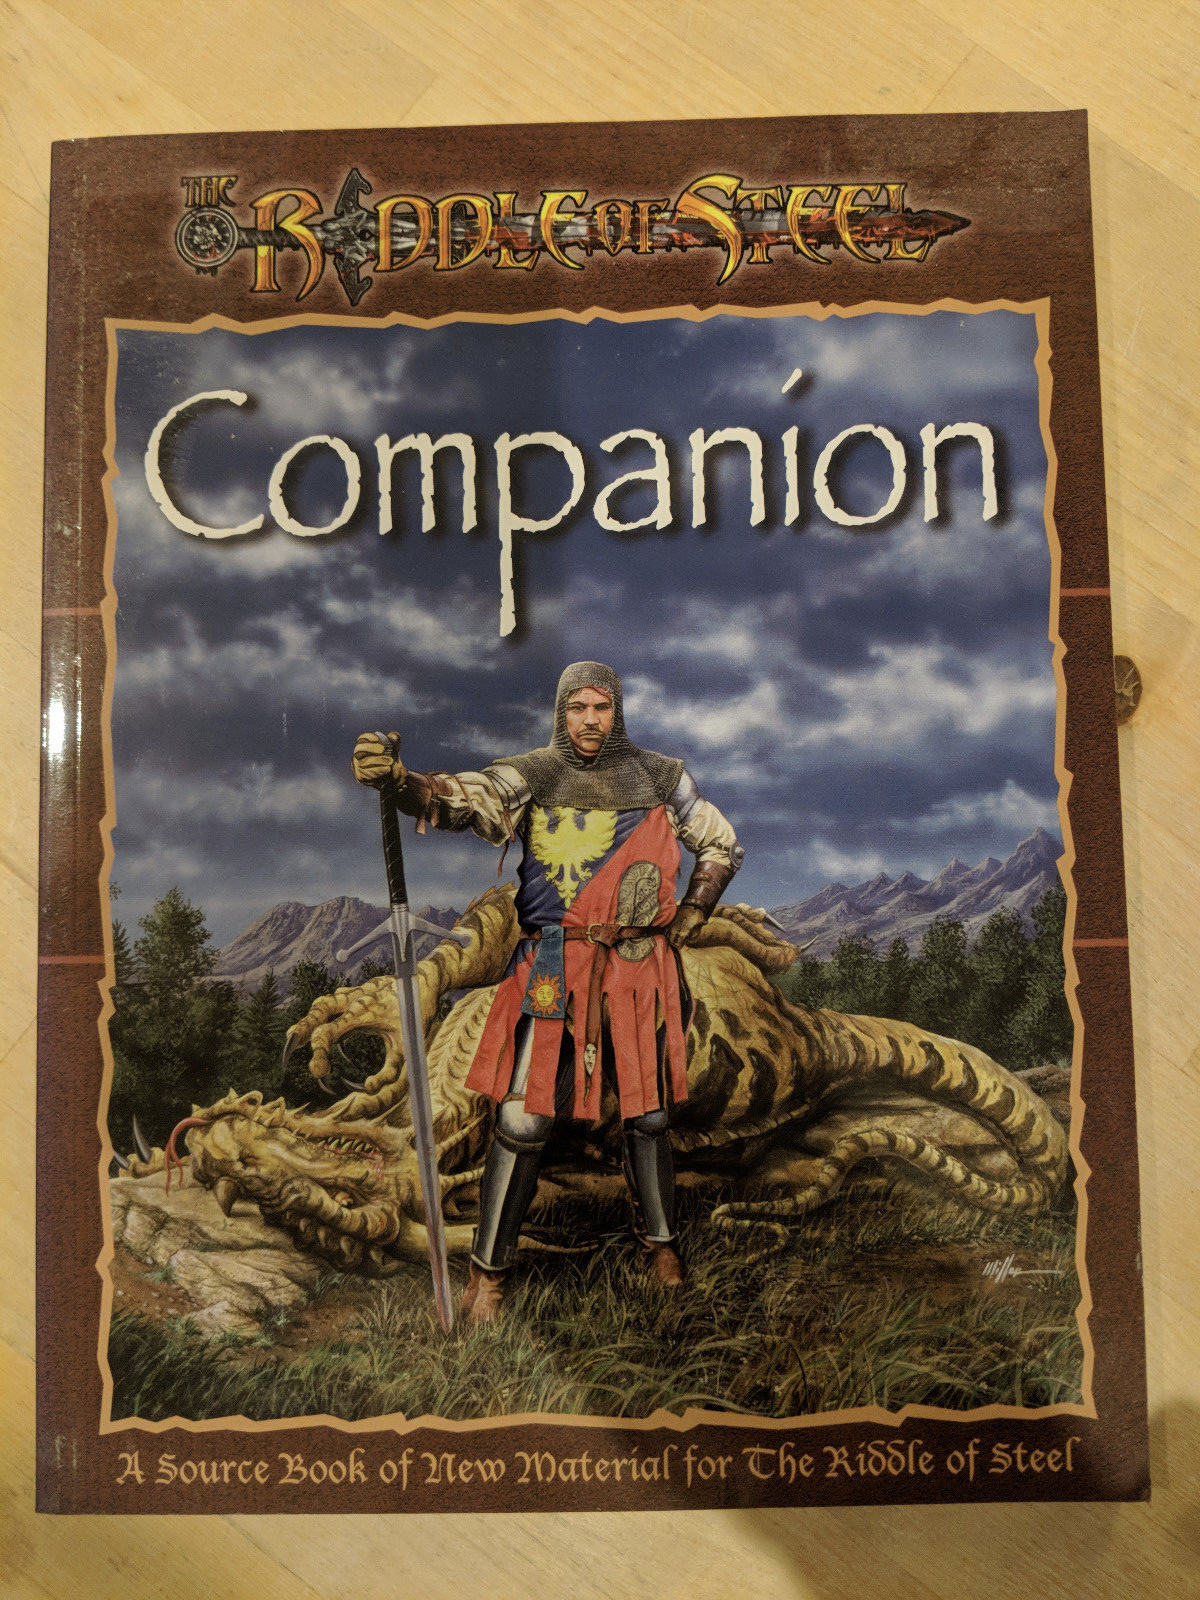 Riddle of Steel Companion by Driftwood Publishing DFW DFW DFW 1003 e8d8bb